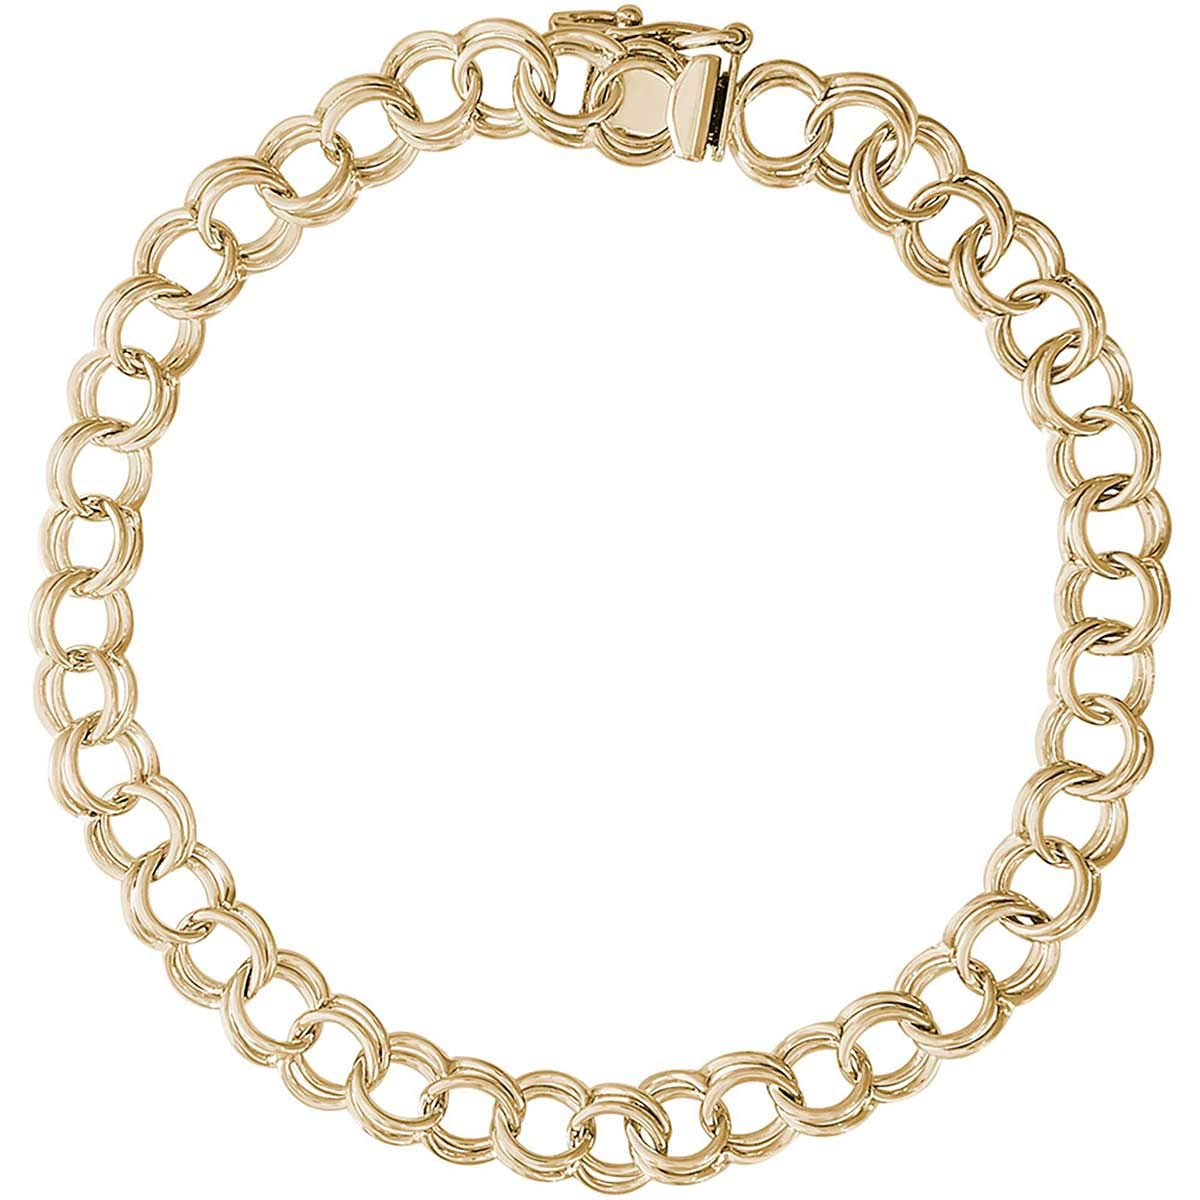 Rembrandt Charms 8'' Charm Bracelet, Gold Plated Silver